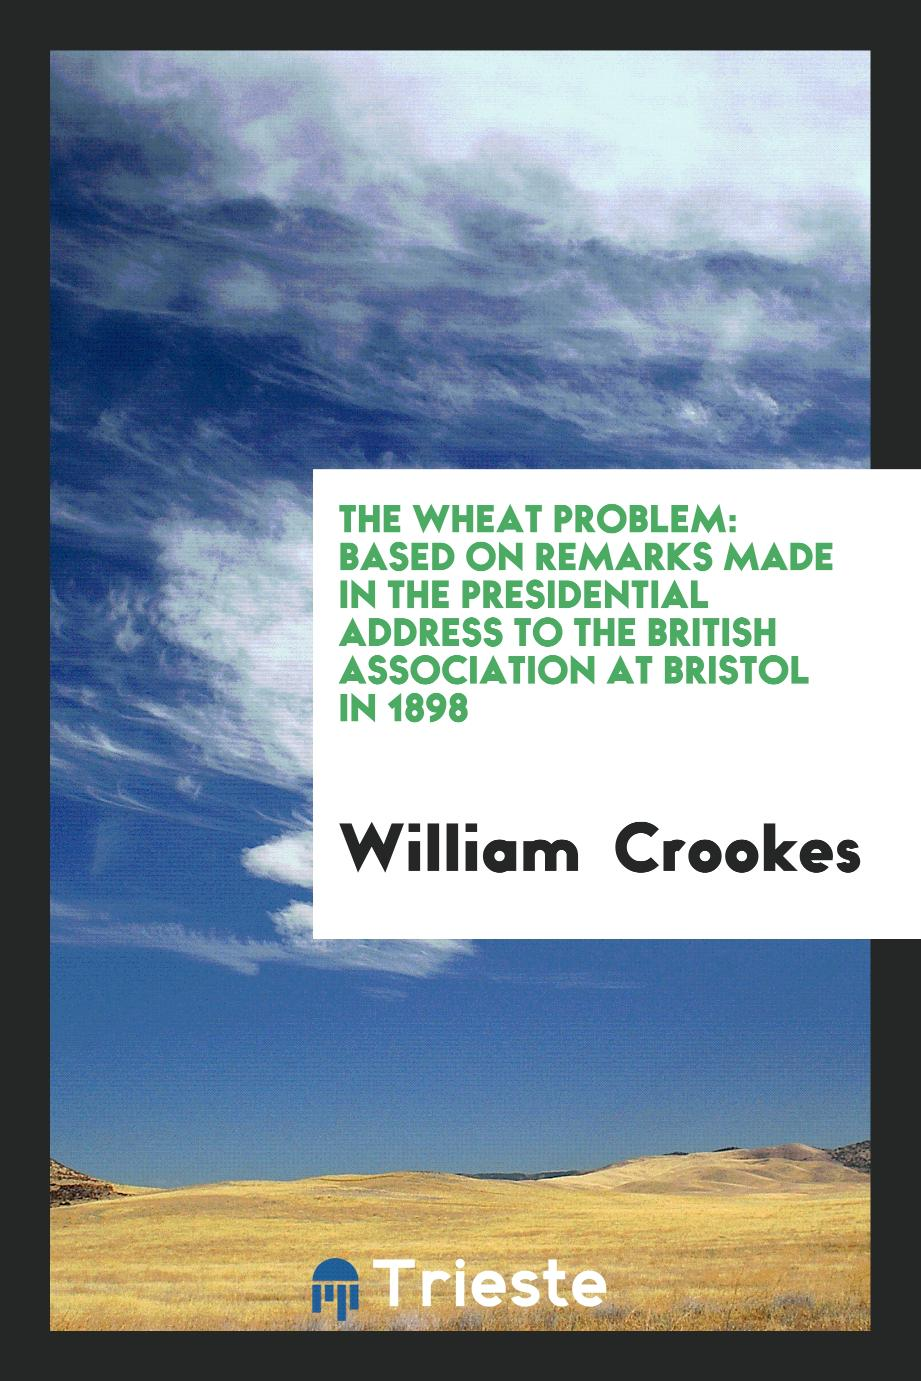 The Wheat Problem: Based on Remarks Made in the Presidential Address to the British Association at Bristol in 1898